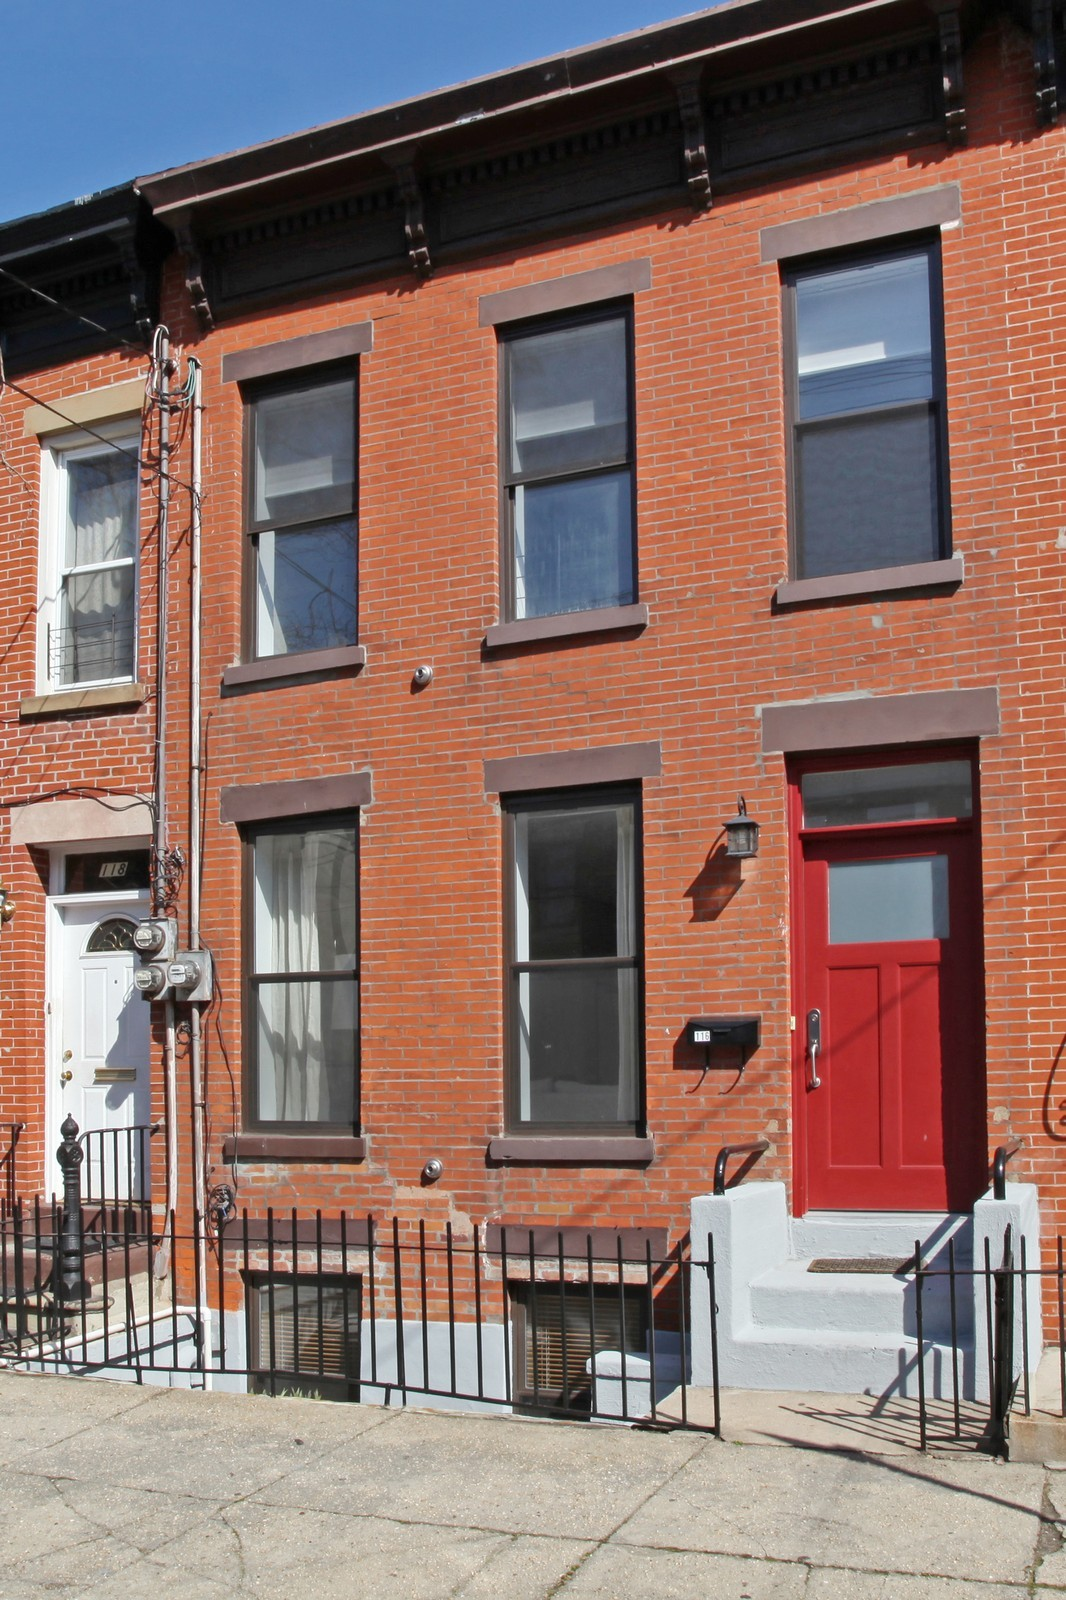 Real Estate Photography - 116 Pioneer Street, Brooklyn, NY, 11231 - Front View